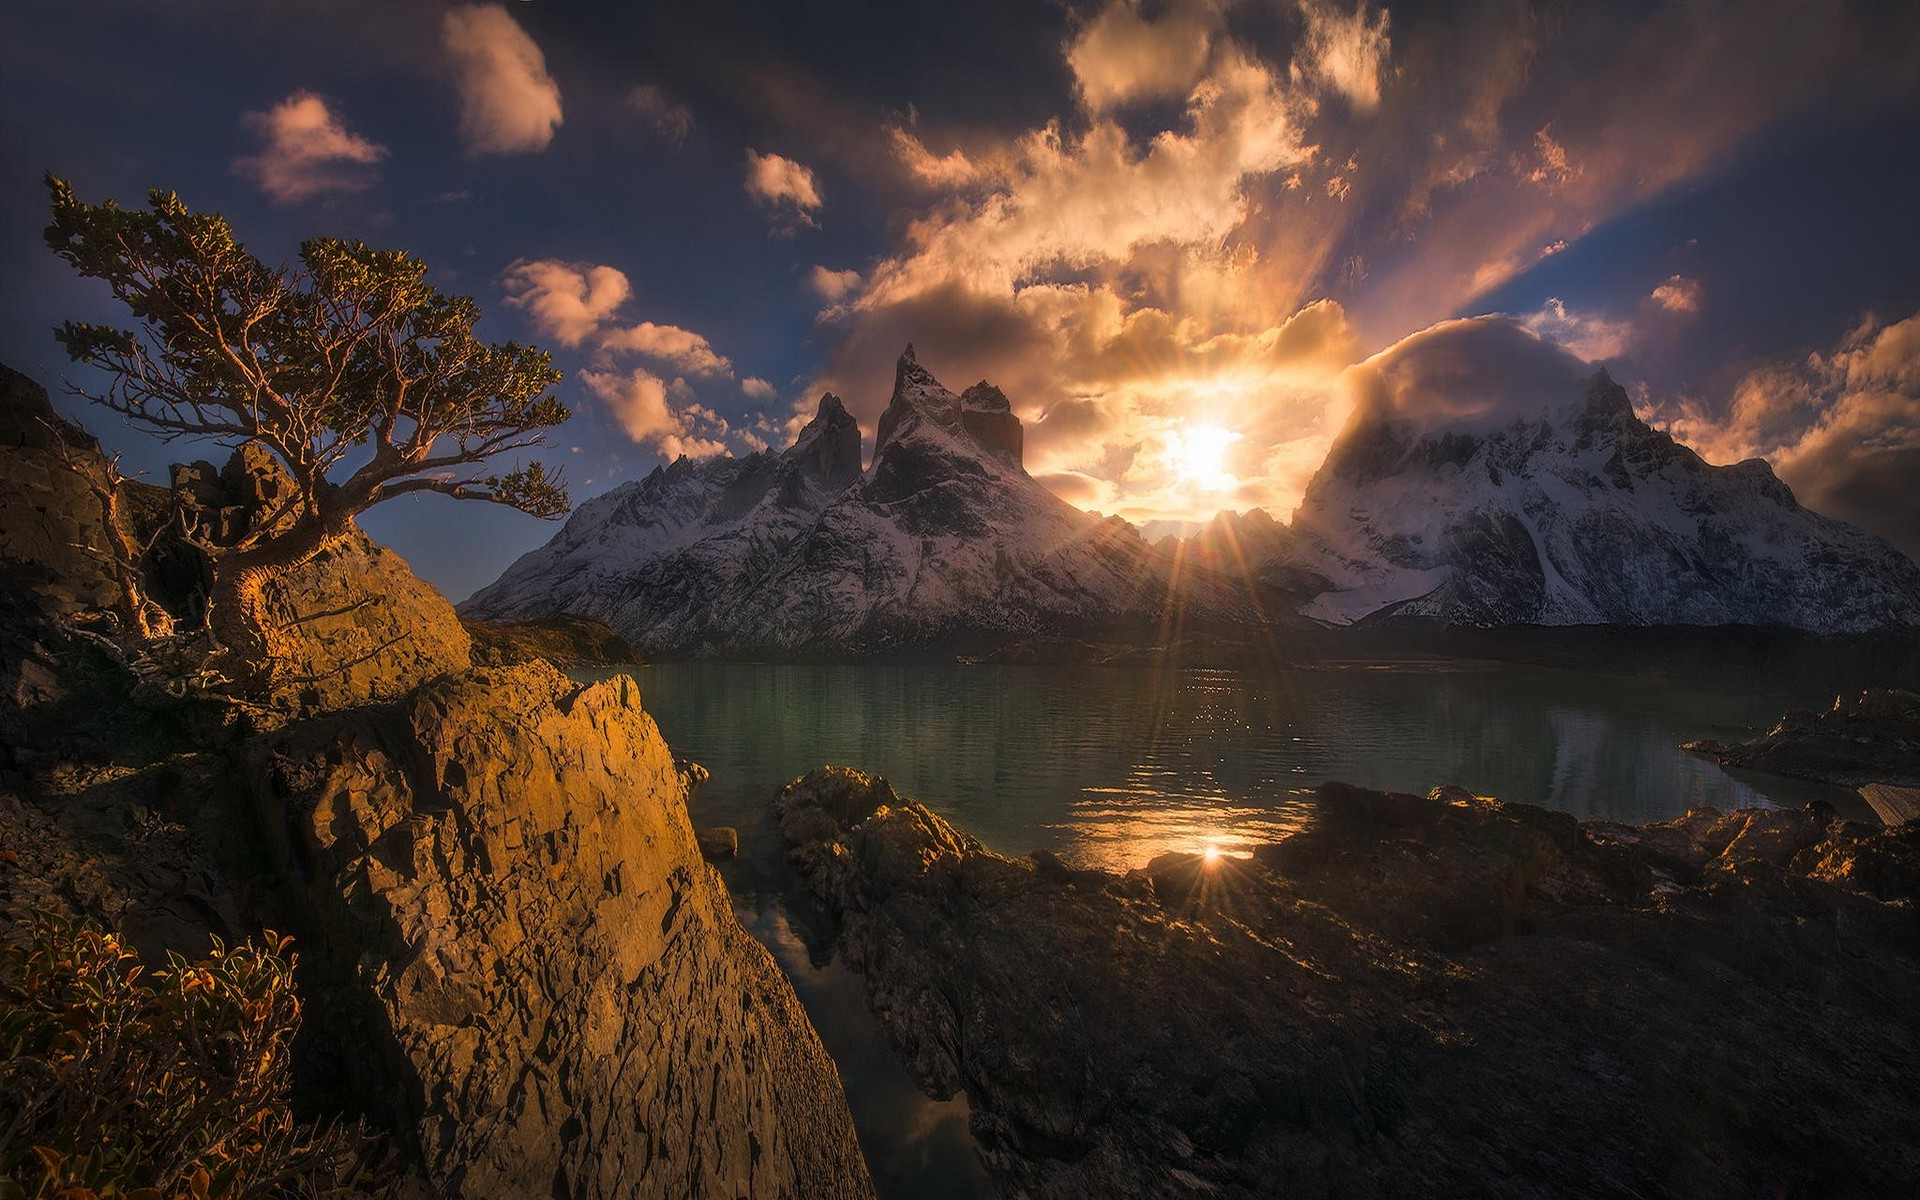 Falling Water Hd Wallpaper Nature Landscape Mountain Sunset Chile Torres Del